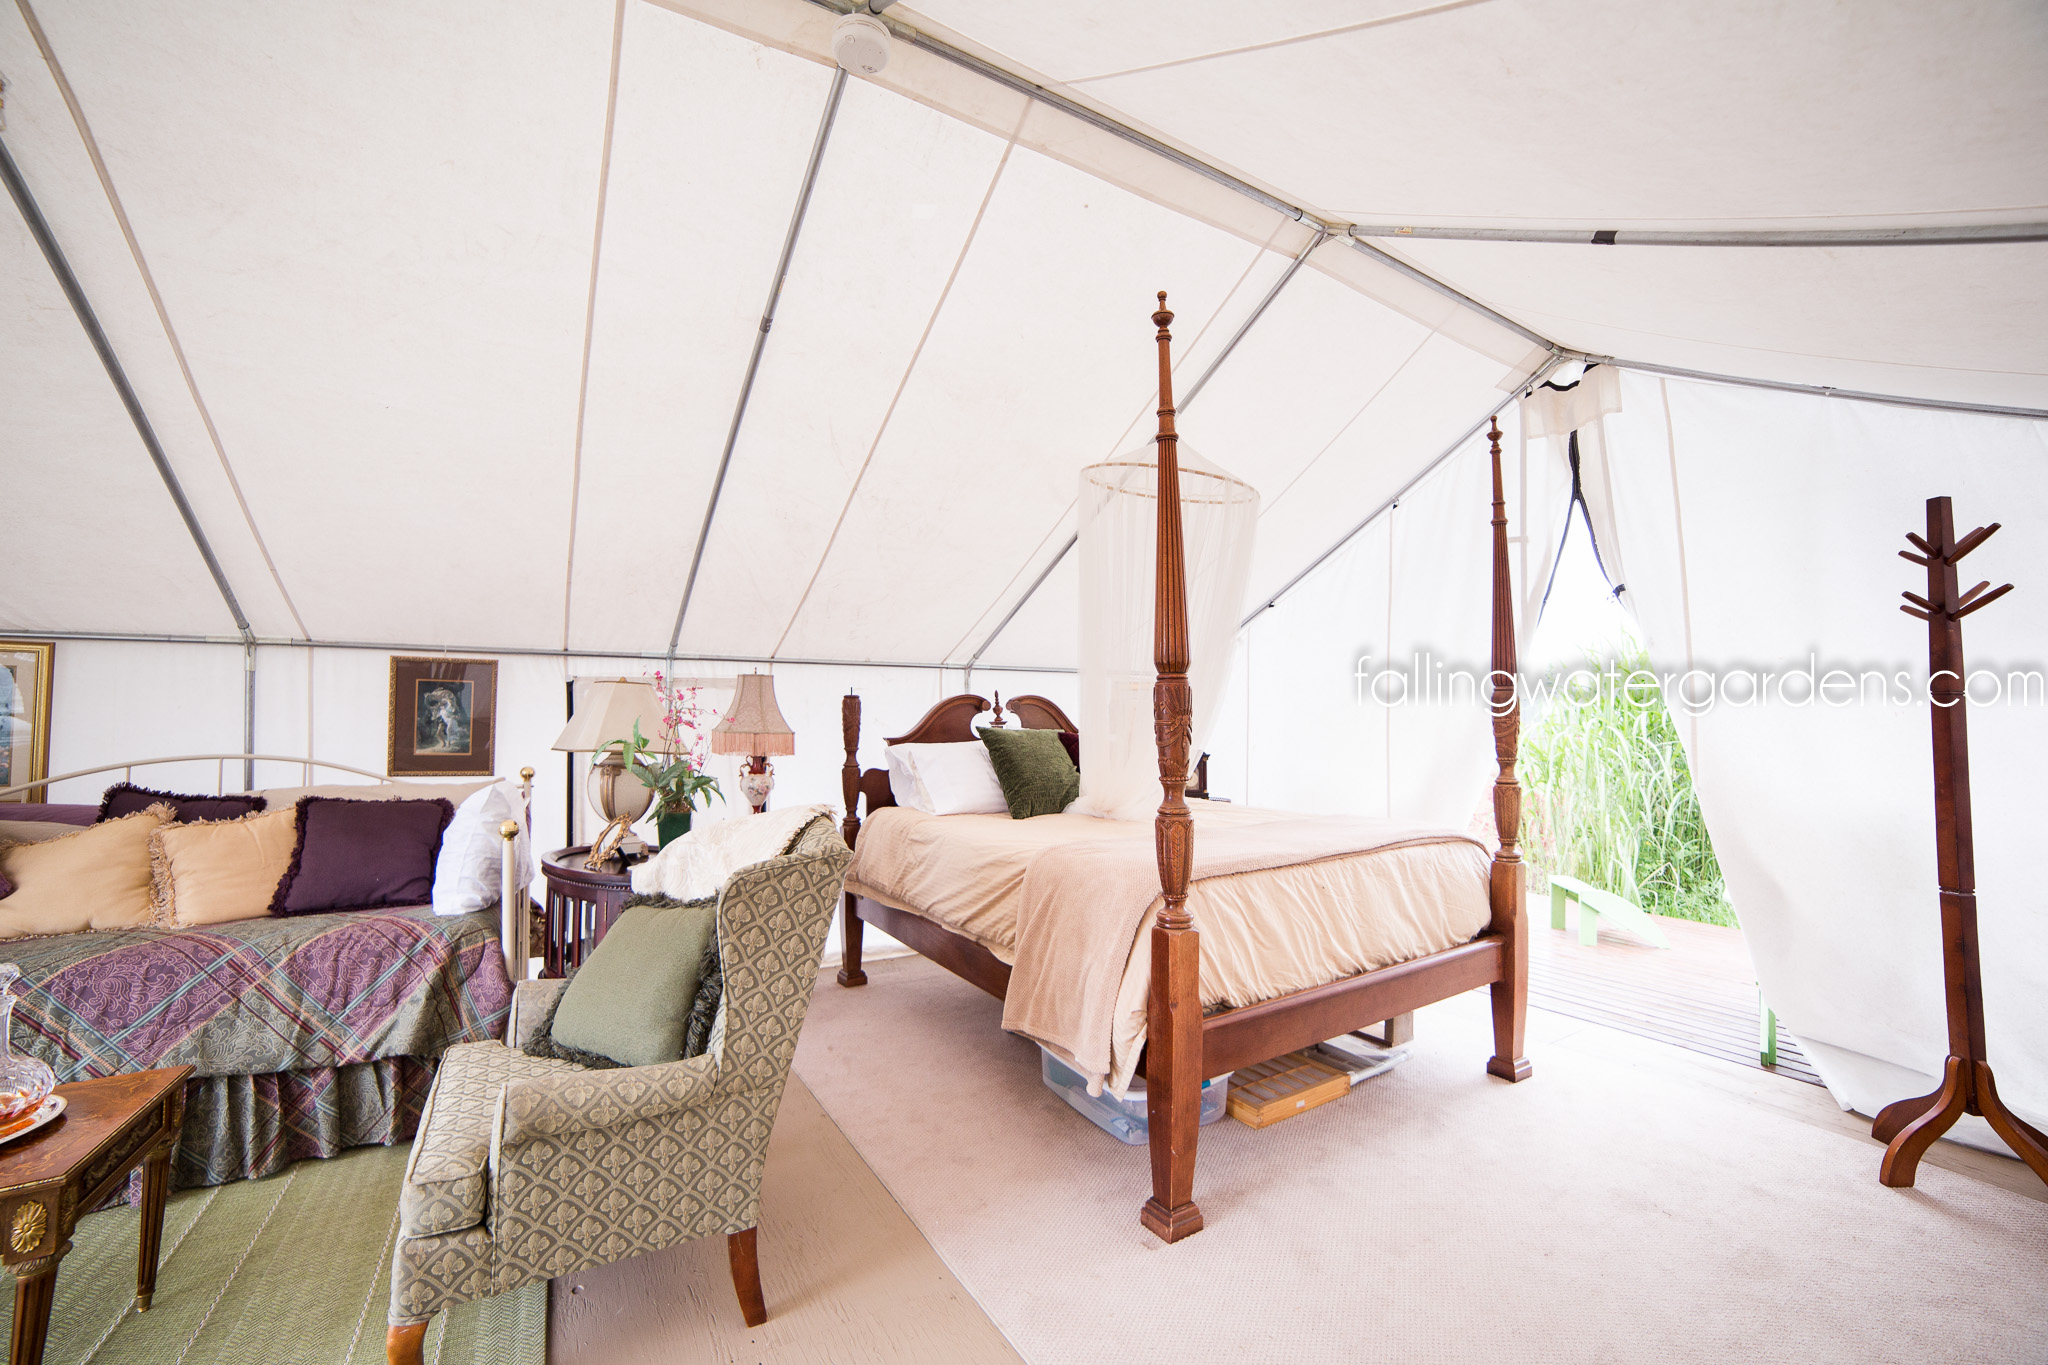 Interior of Glamping Tent